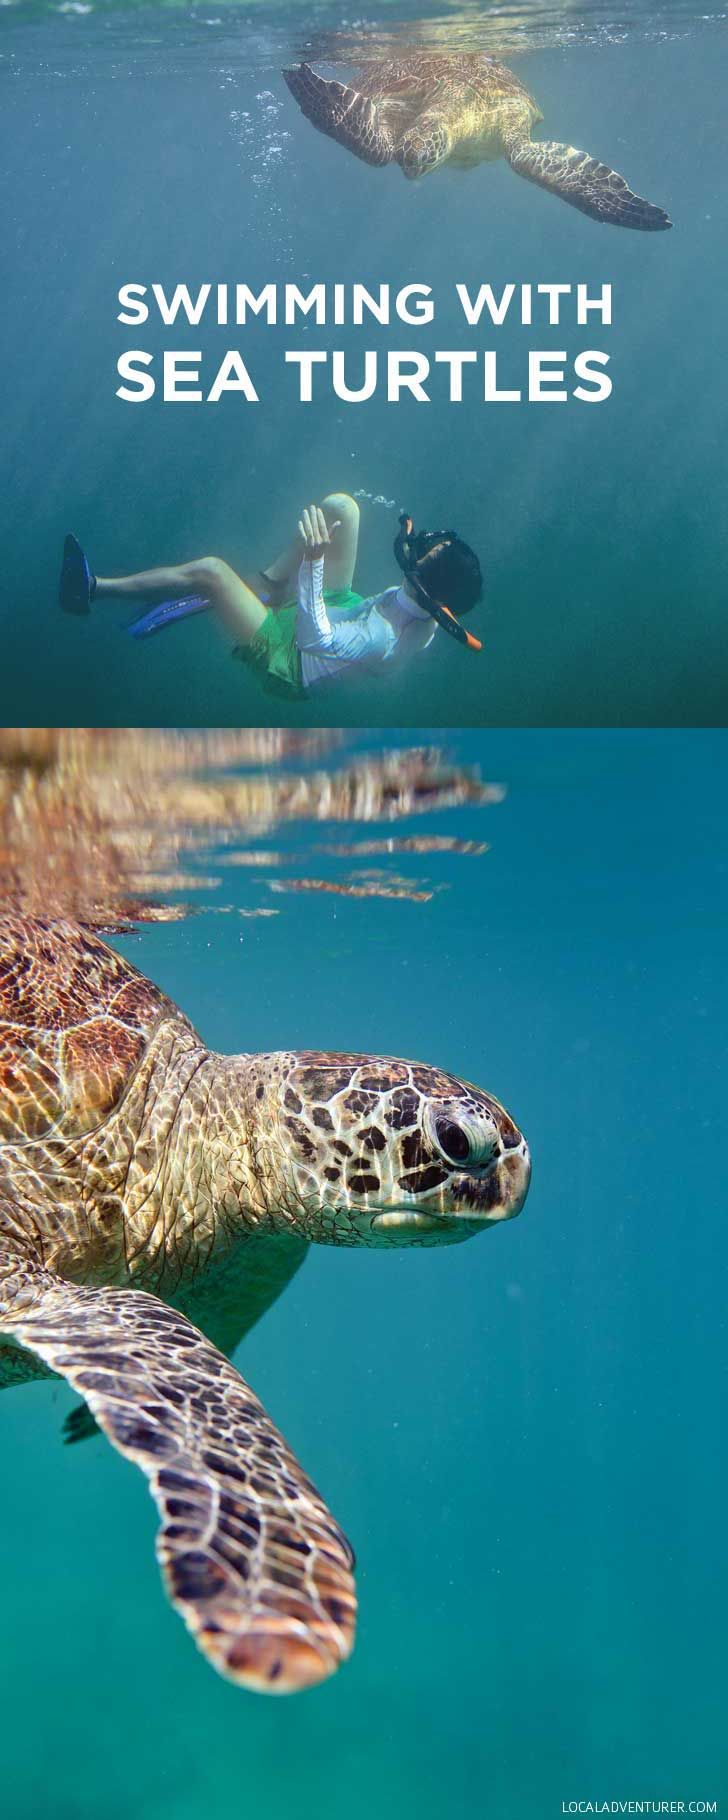 Swimming with Dozens of Endangered Sea Turtles in Derawan Islands Indonesia // localadventurer.com